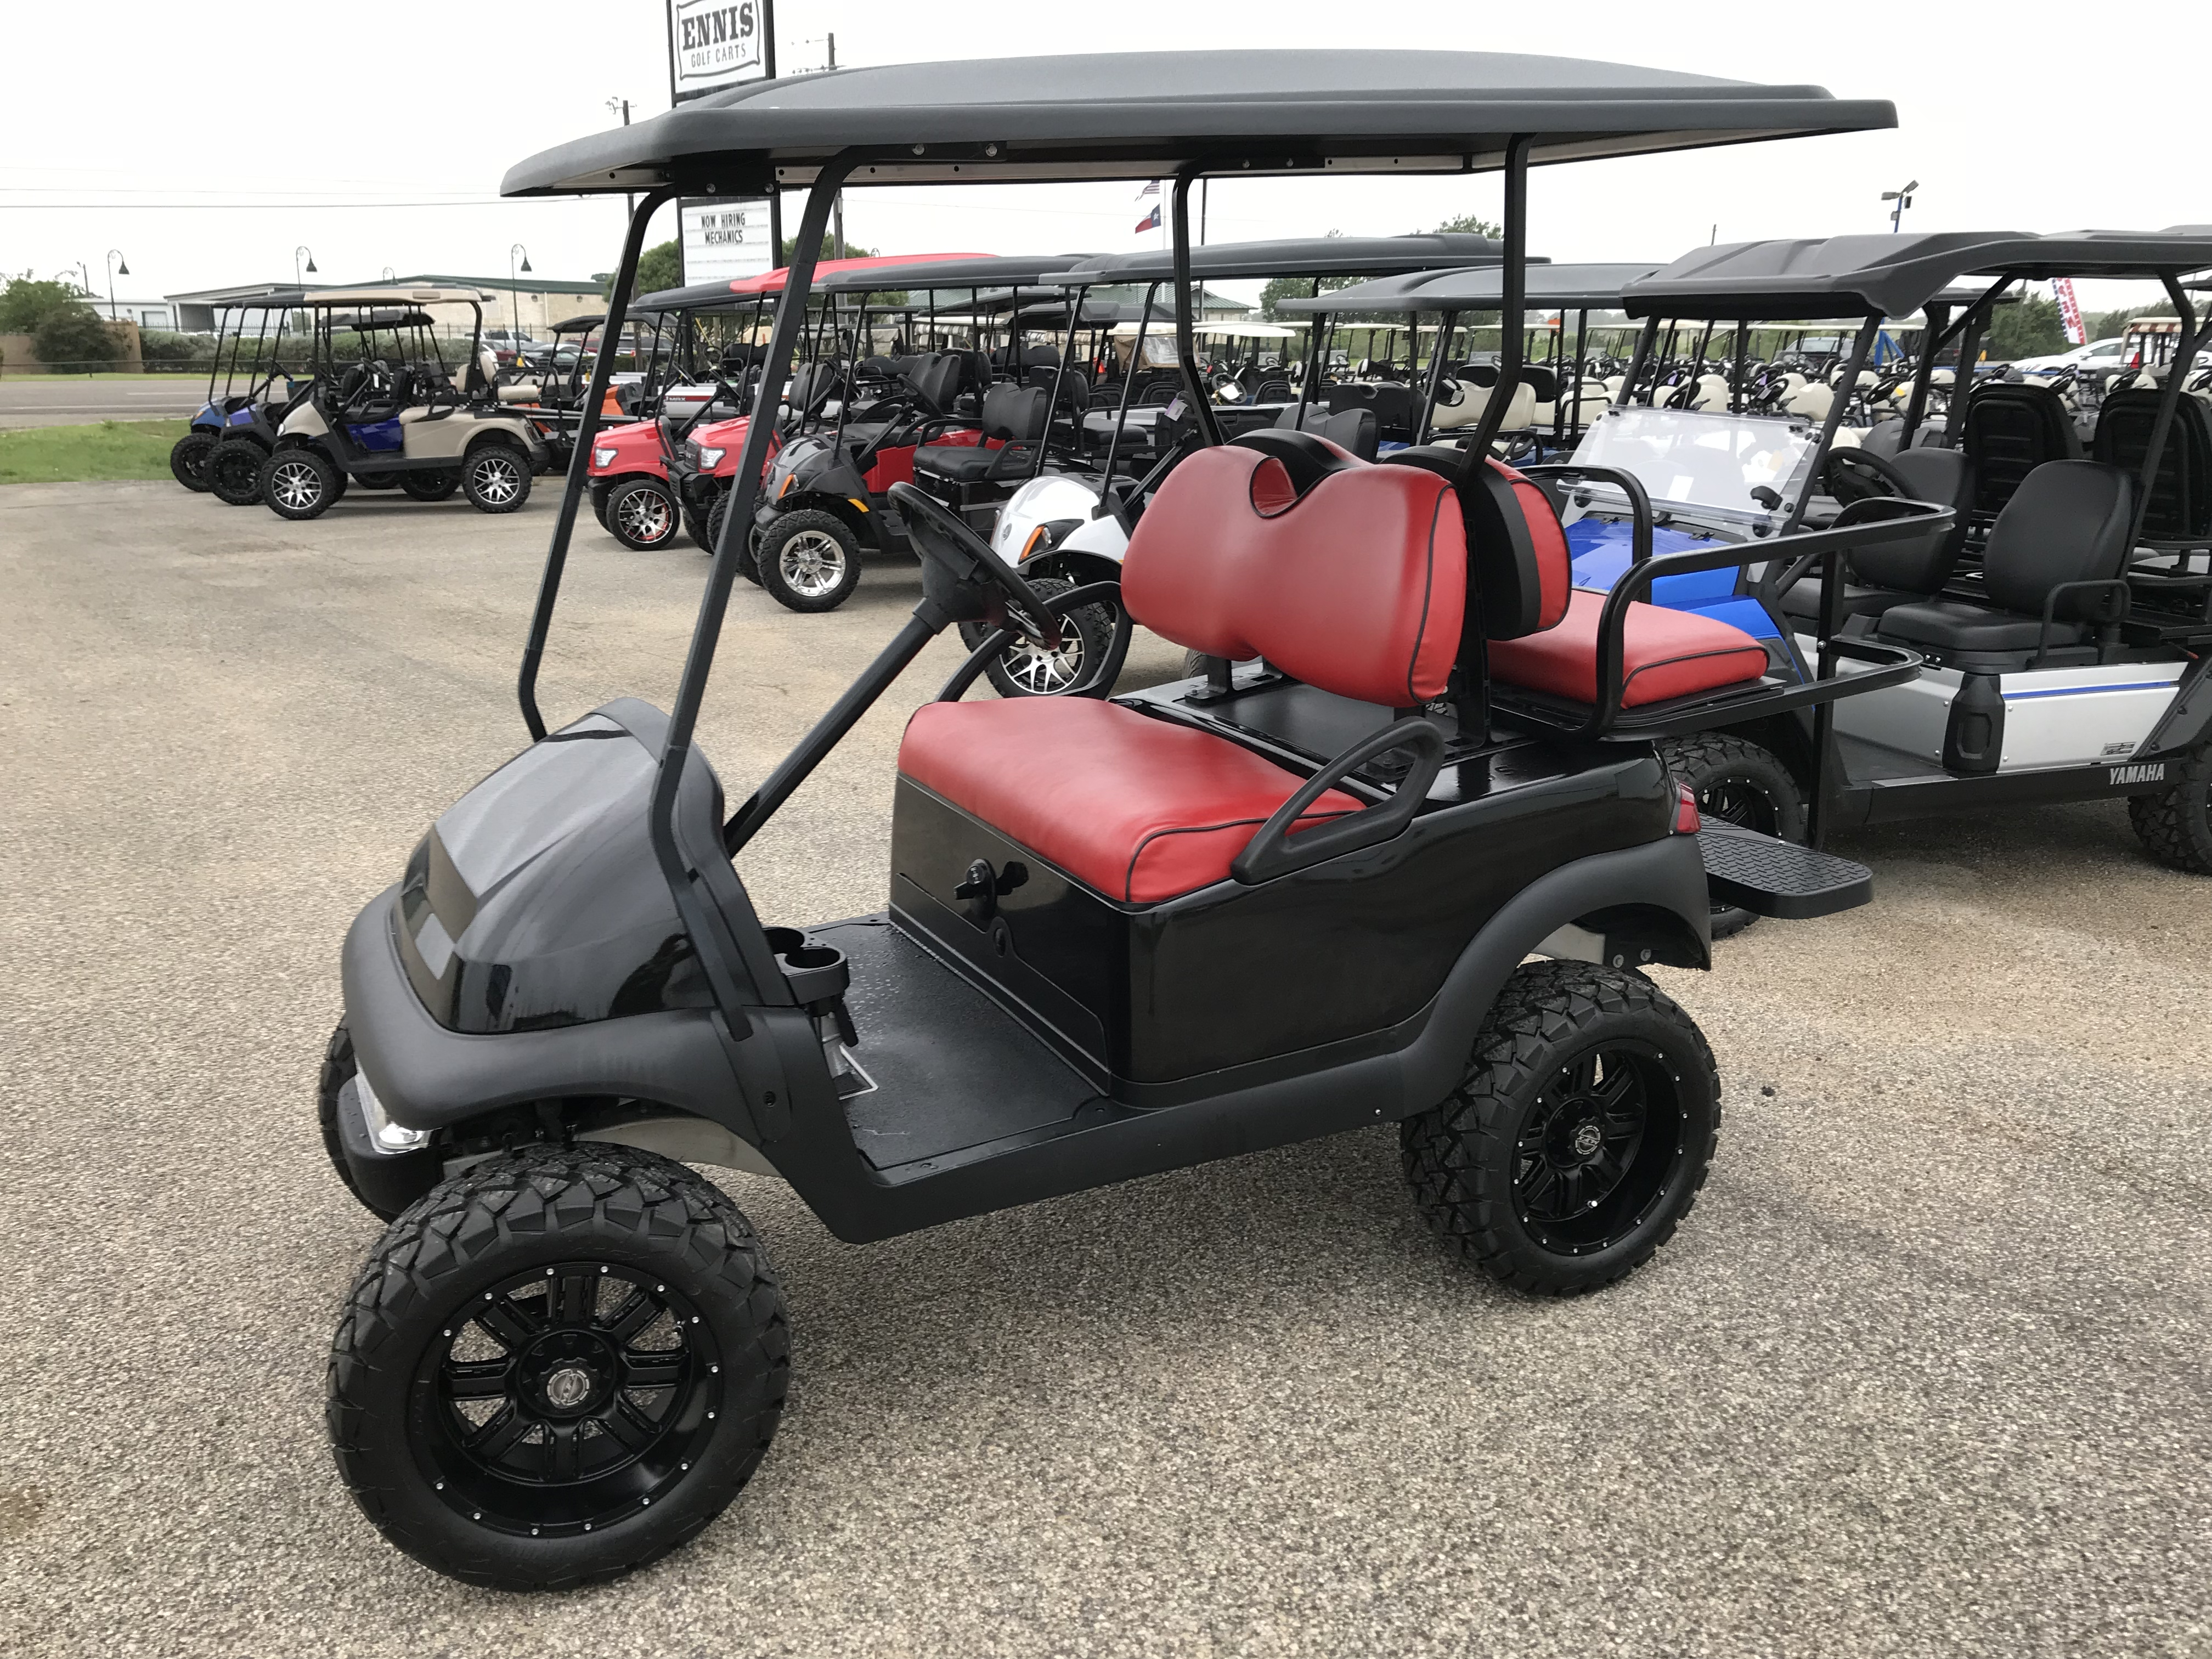 Austin Golf Cart Dealer, Yamaha Golf Cart Dealer : Ennis